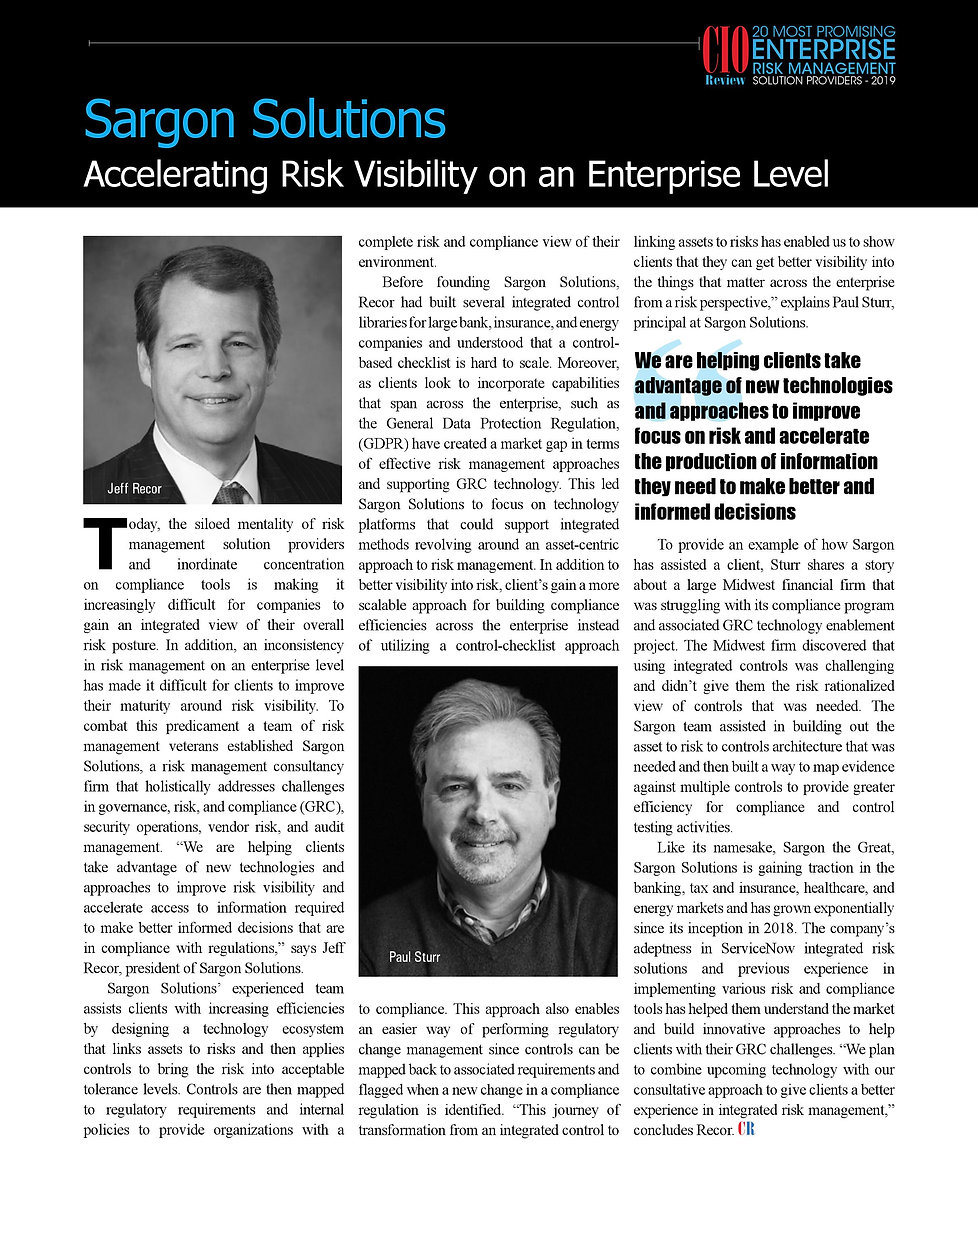 CIOReview Article 2019.jpg